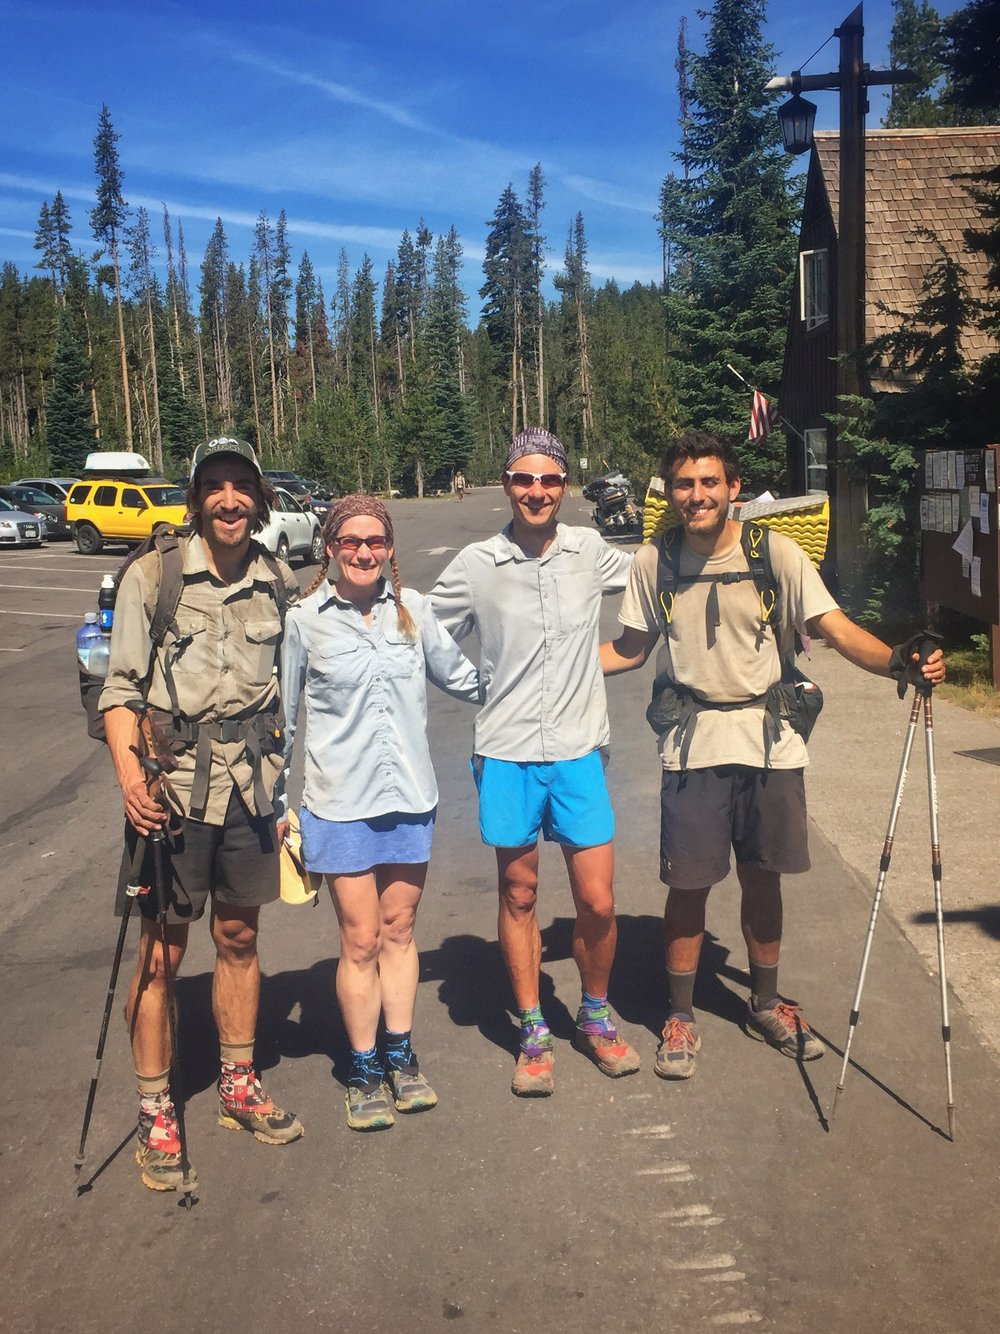 The SOBO reunion at Mazama Village. L->R: Happy Feet, Huckleberry, Macro and Delta